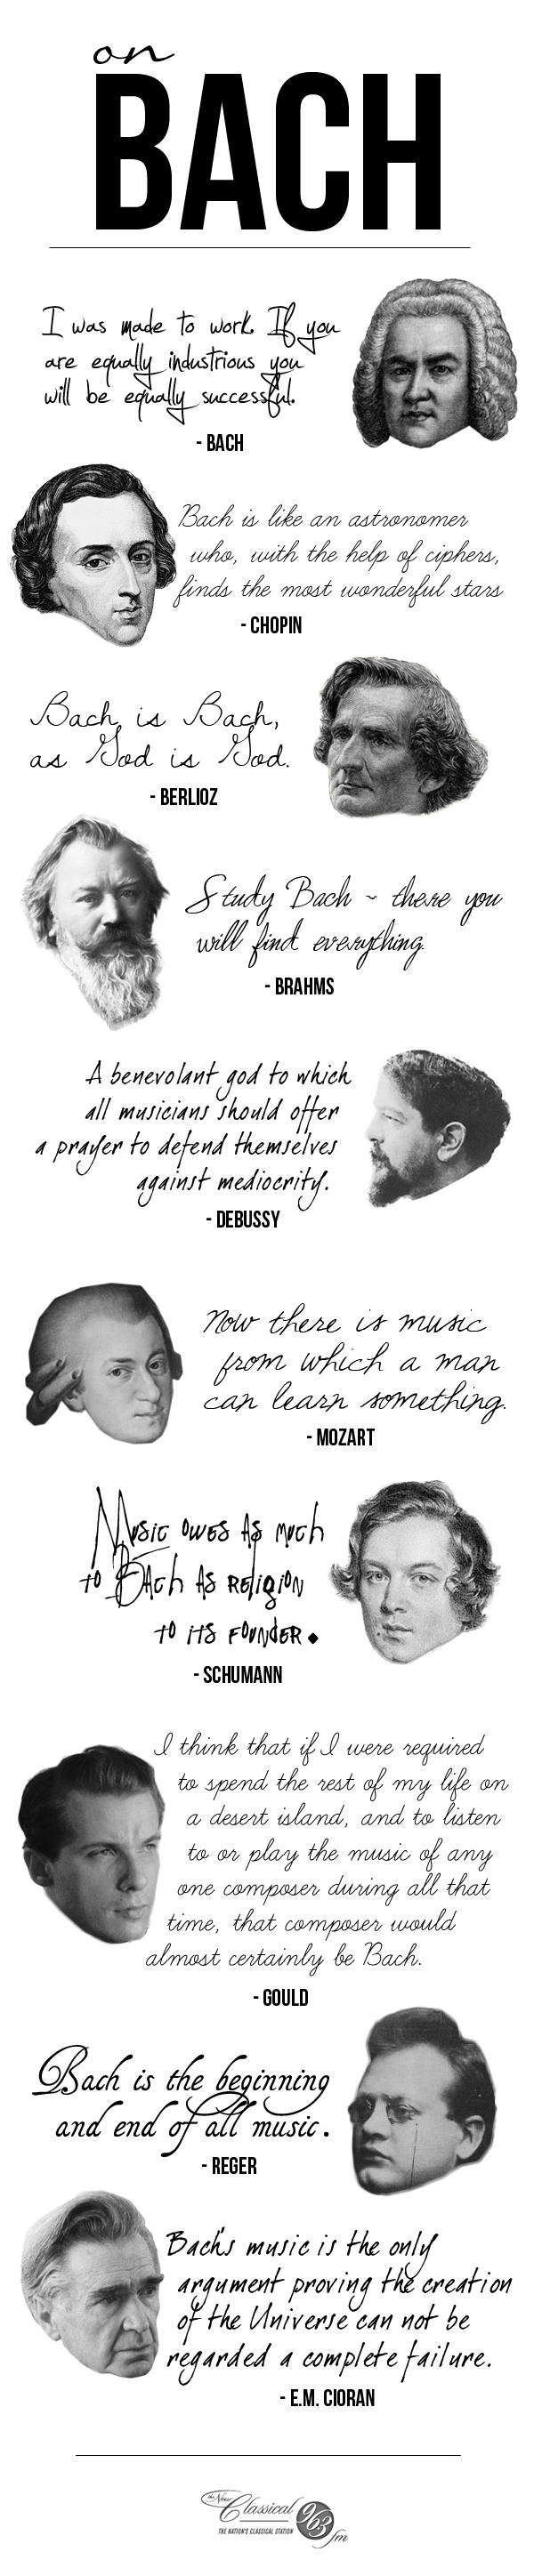 bach-quotes.png